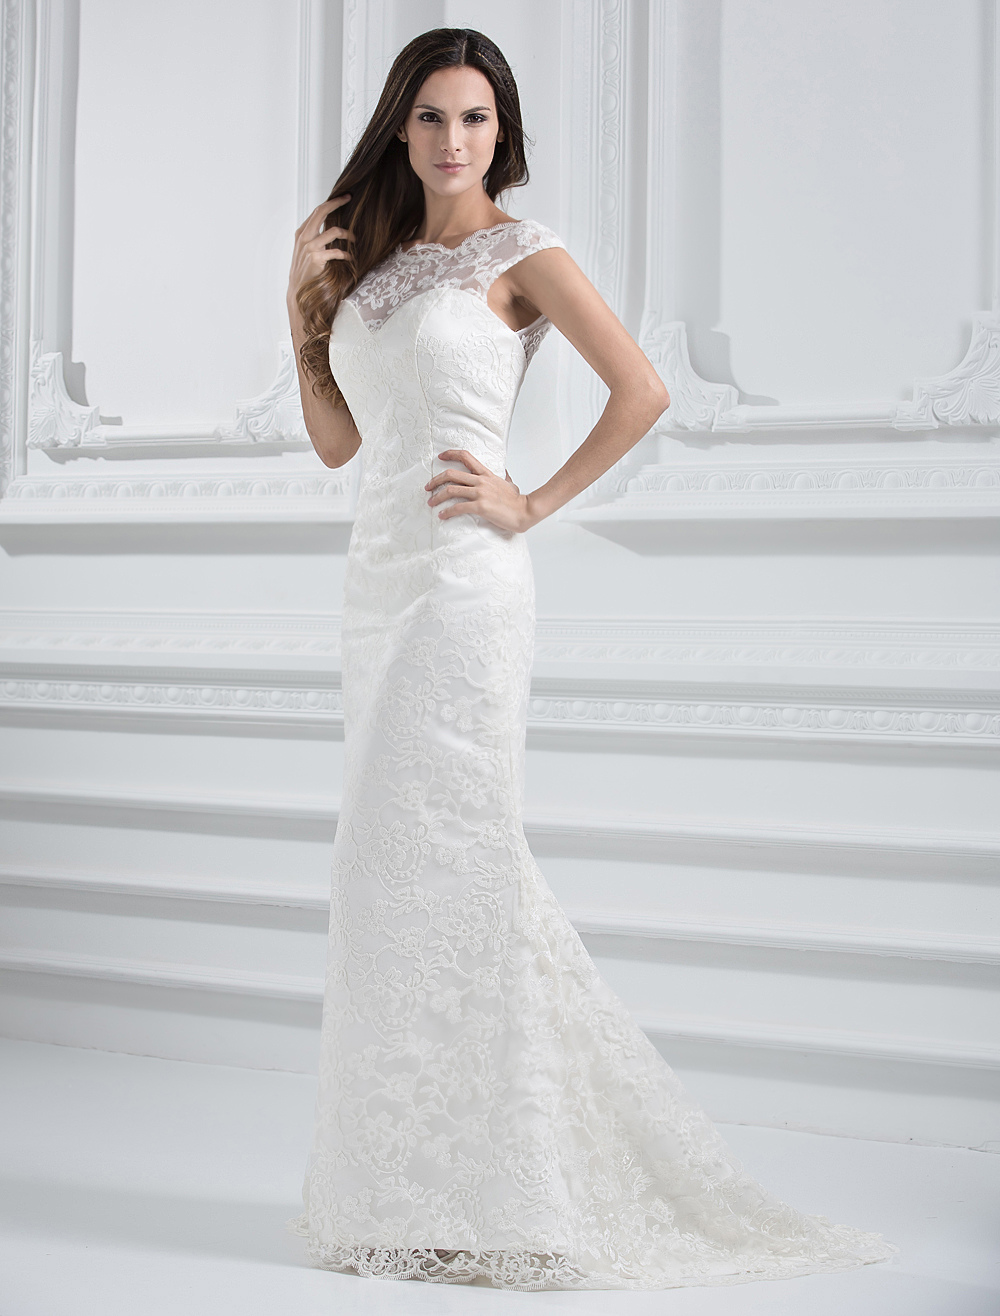 Ivory Wedding Dress Off-The-Shoulder Mermaid Illusion Backless Lace Wedding Gown